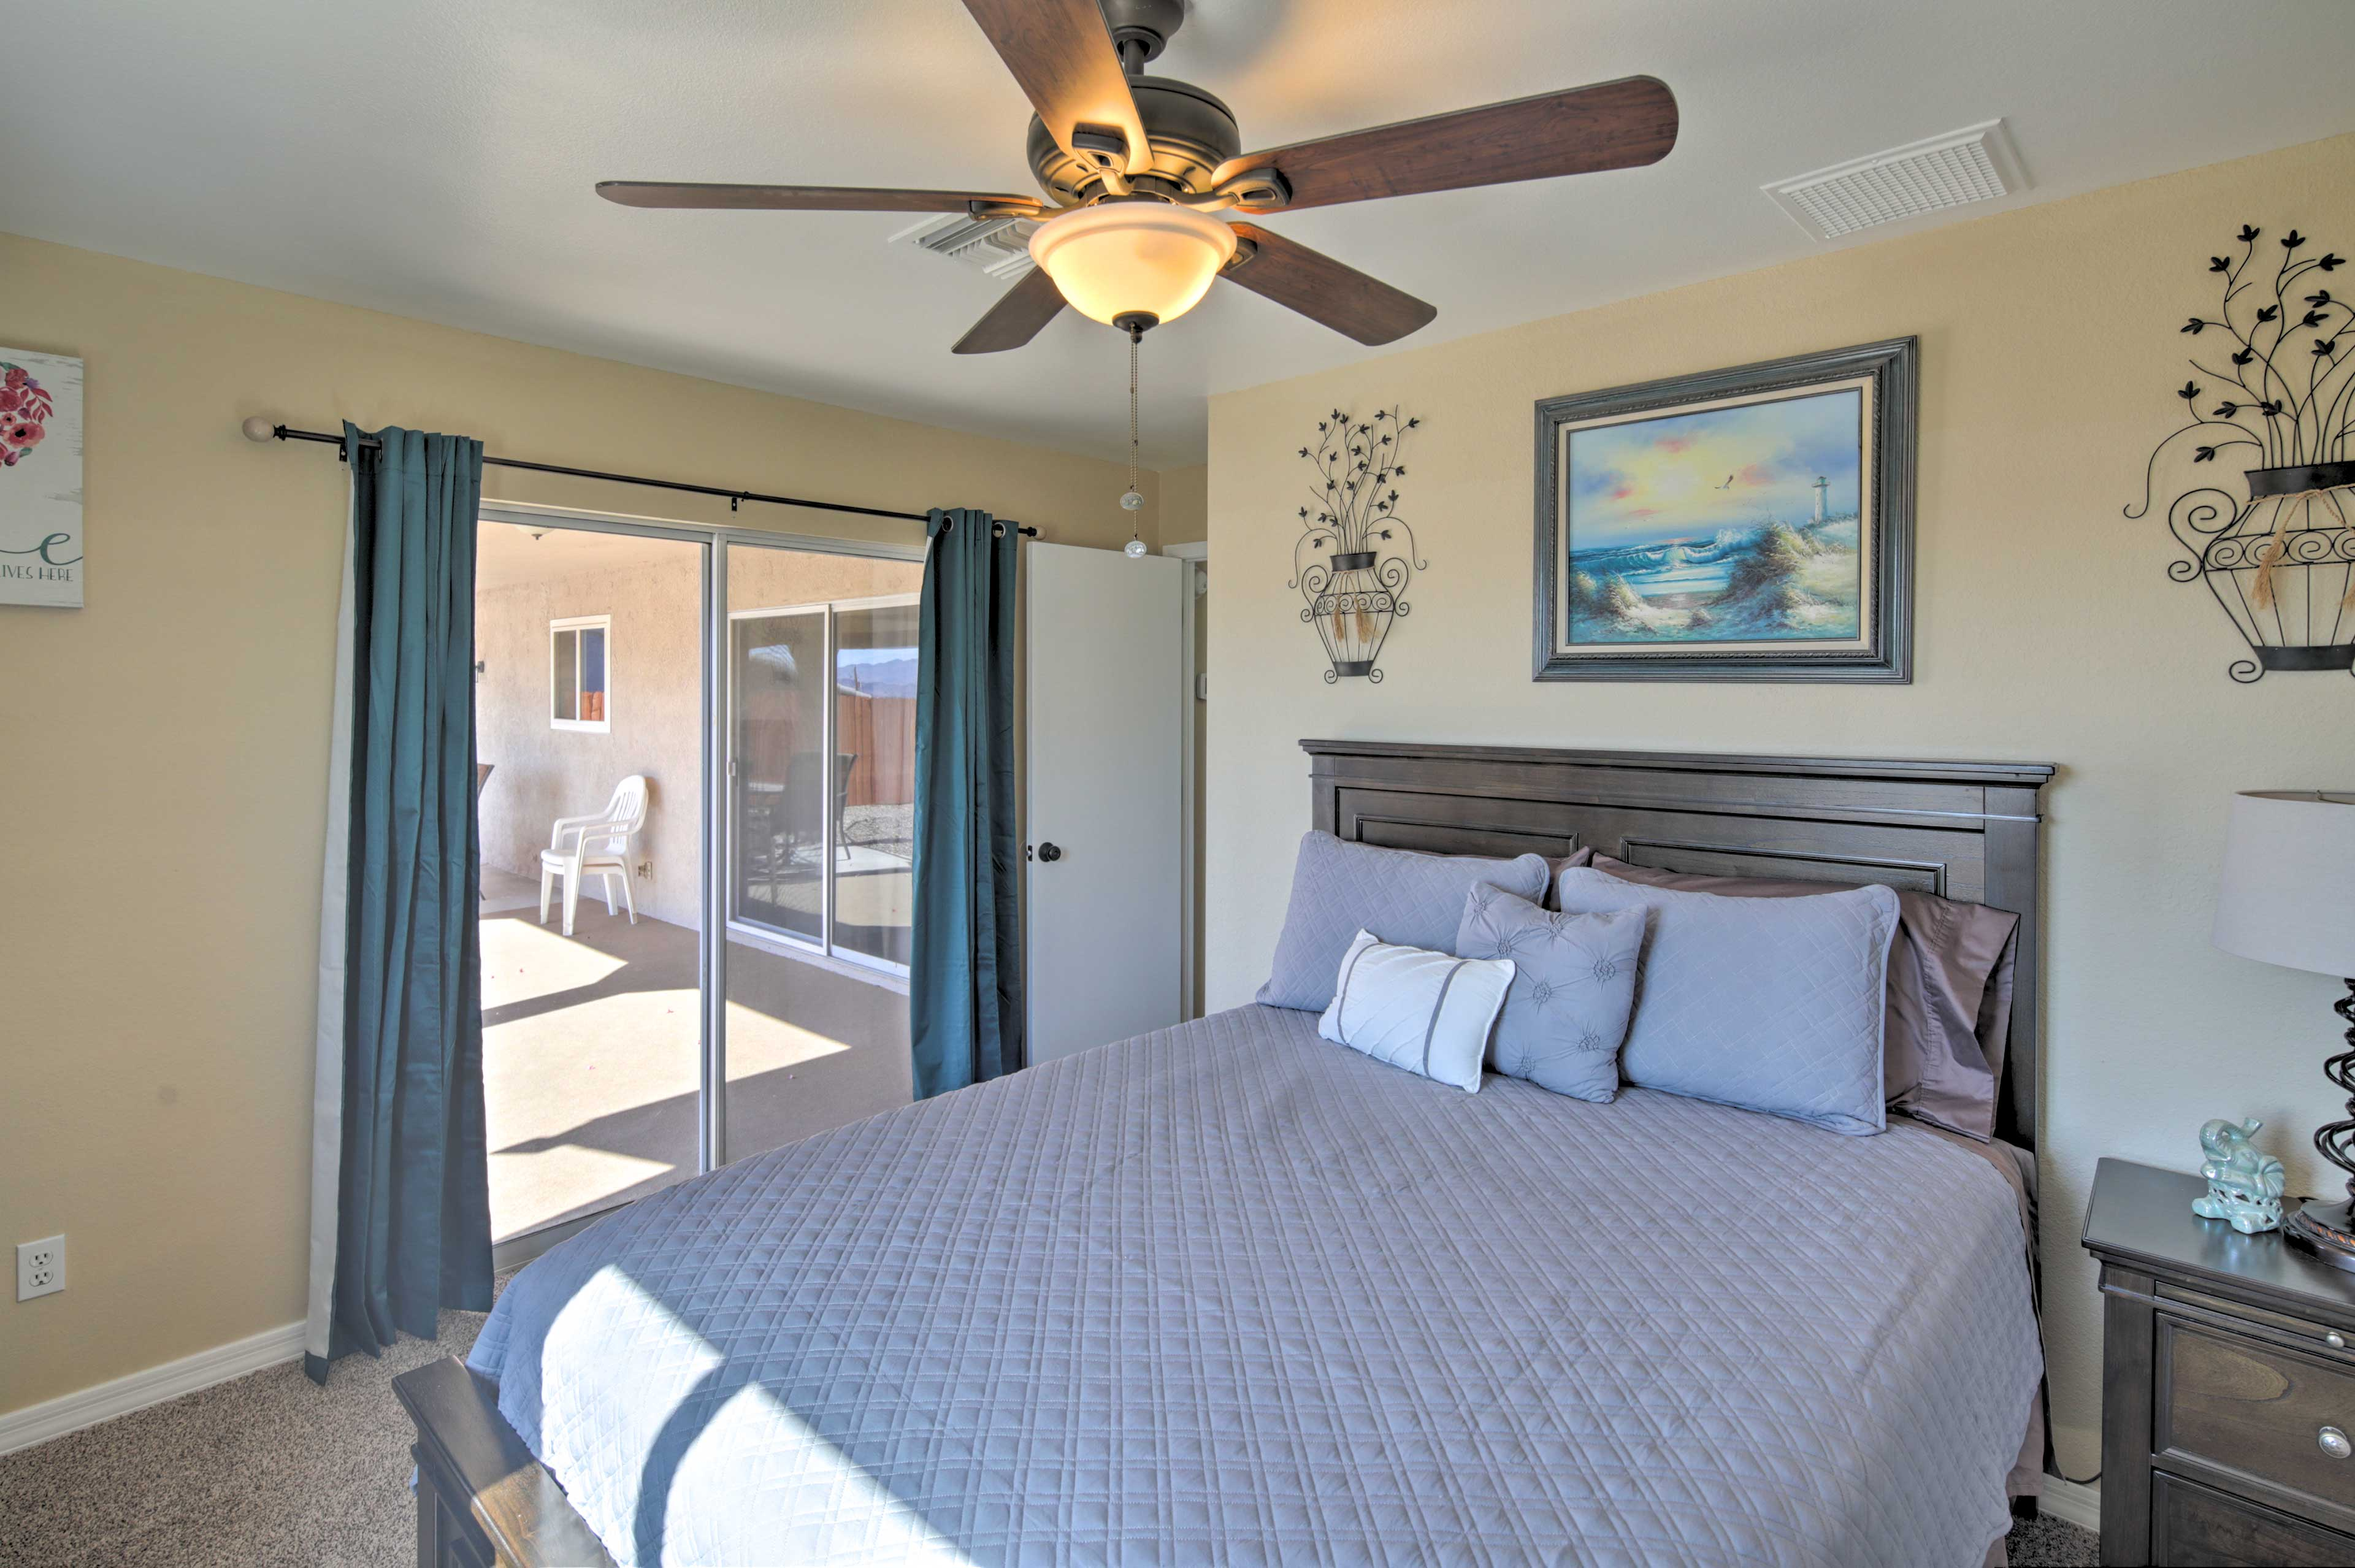 This second bedroom hosts a queen bed and lots of natural light!